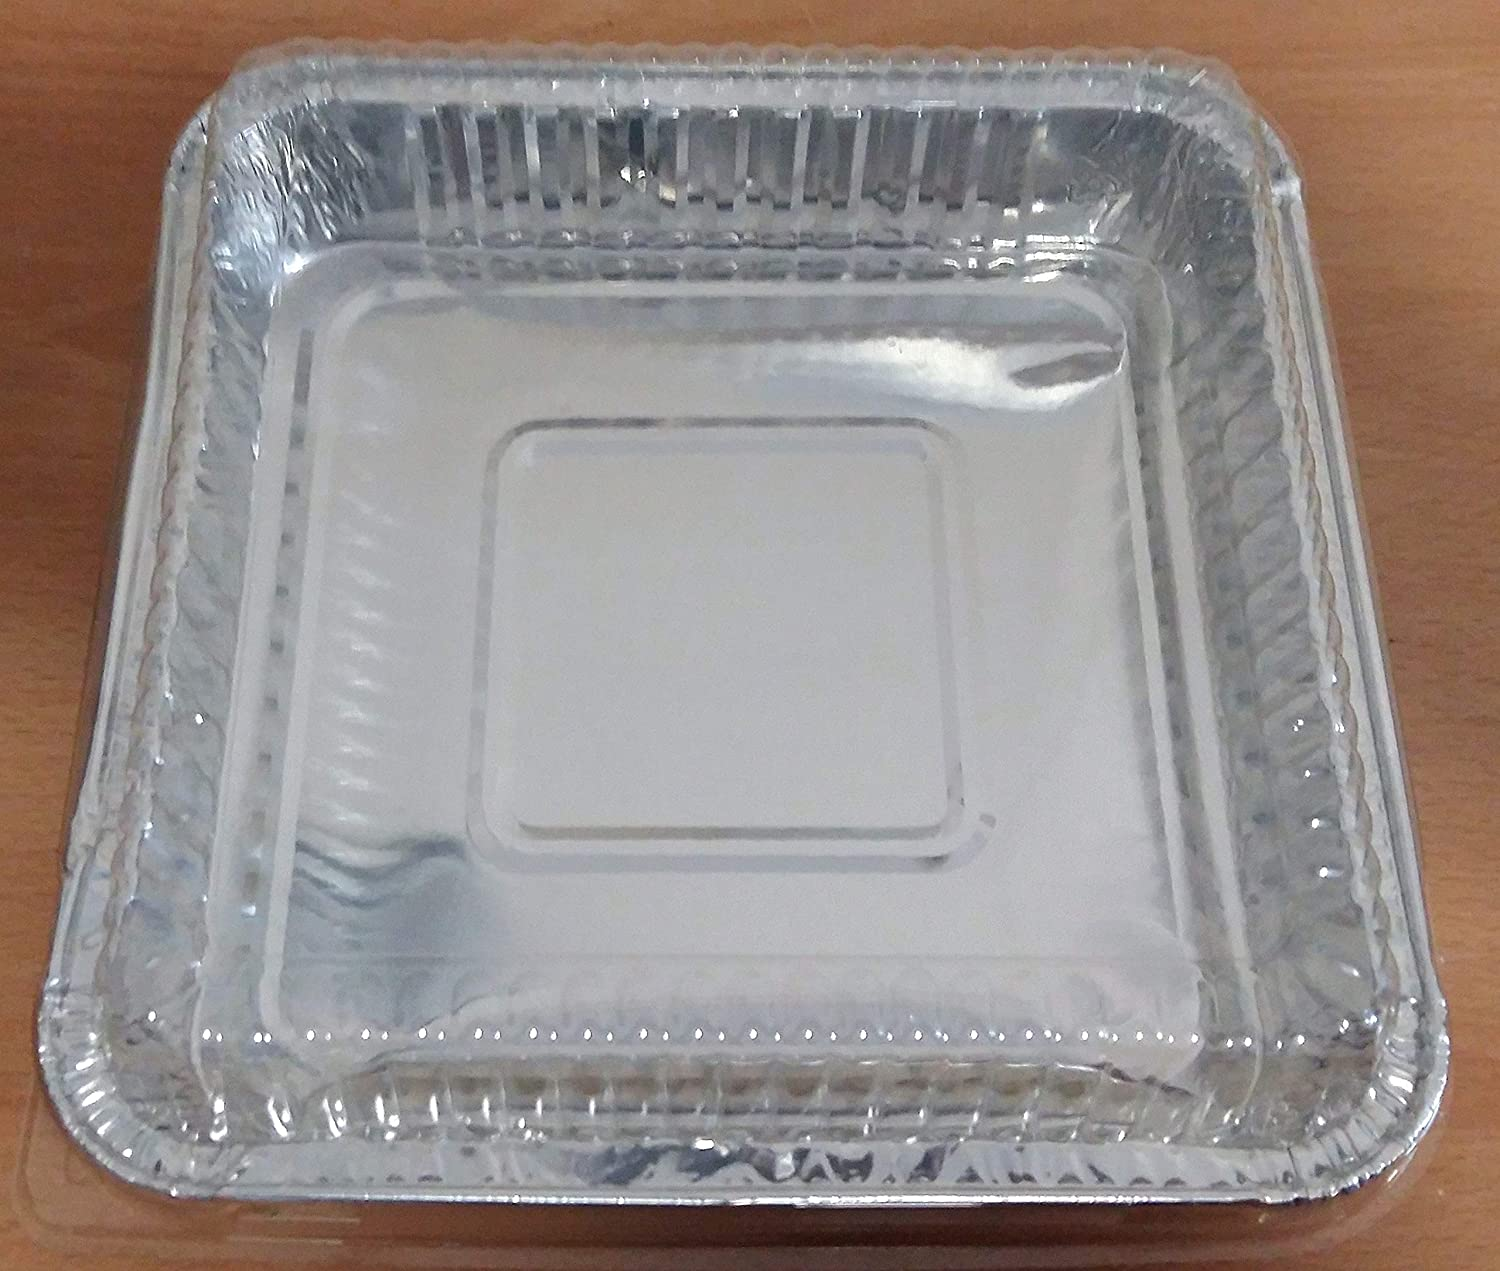 2 Pack Square Aluminium Foil Serving Tray with Lids Oven Cook BBQ Buffet 225mmx225mm 2